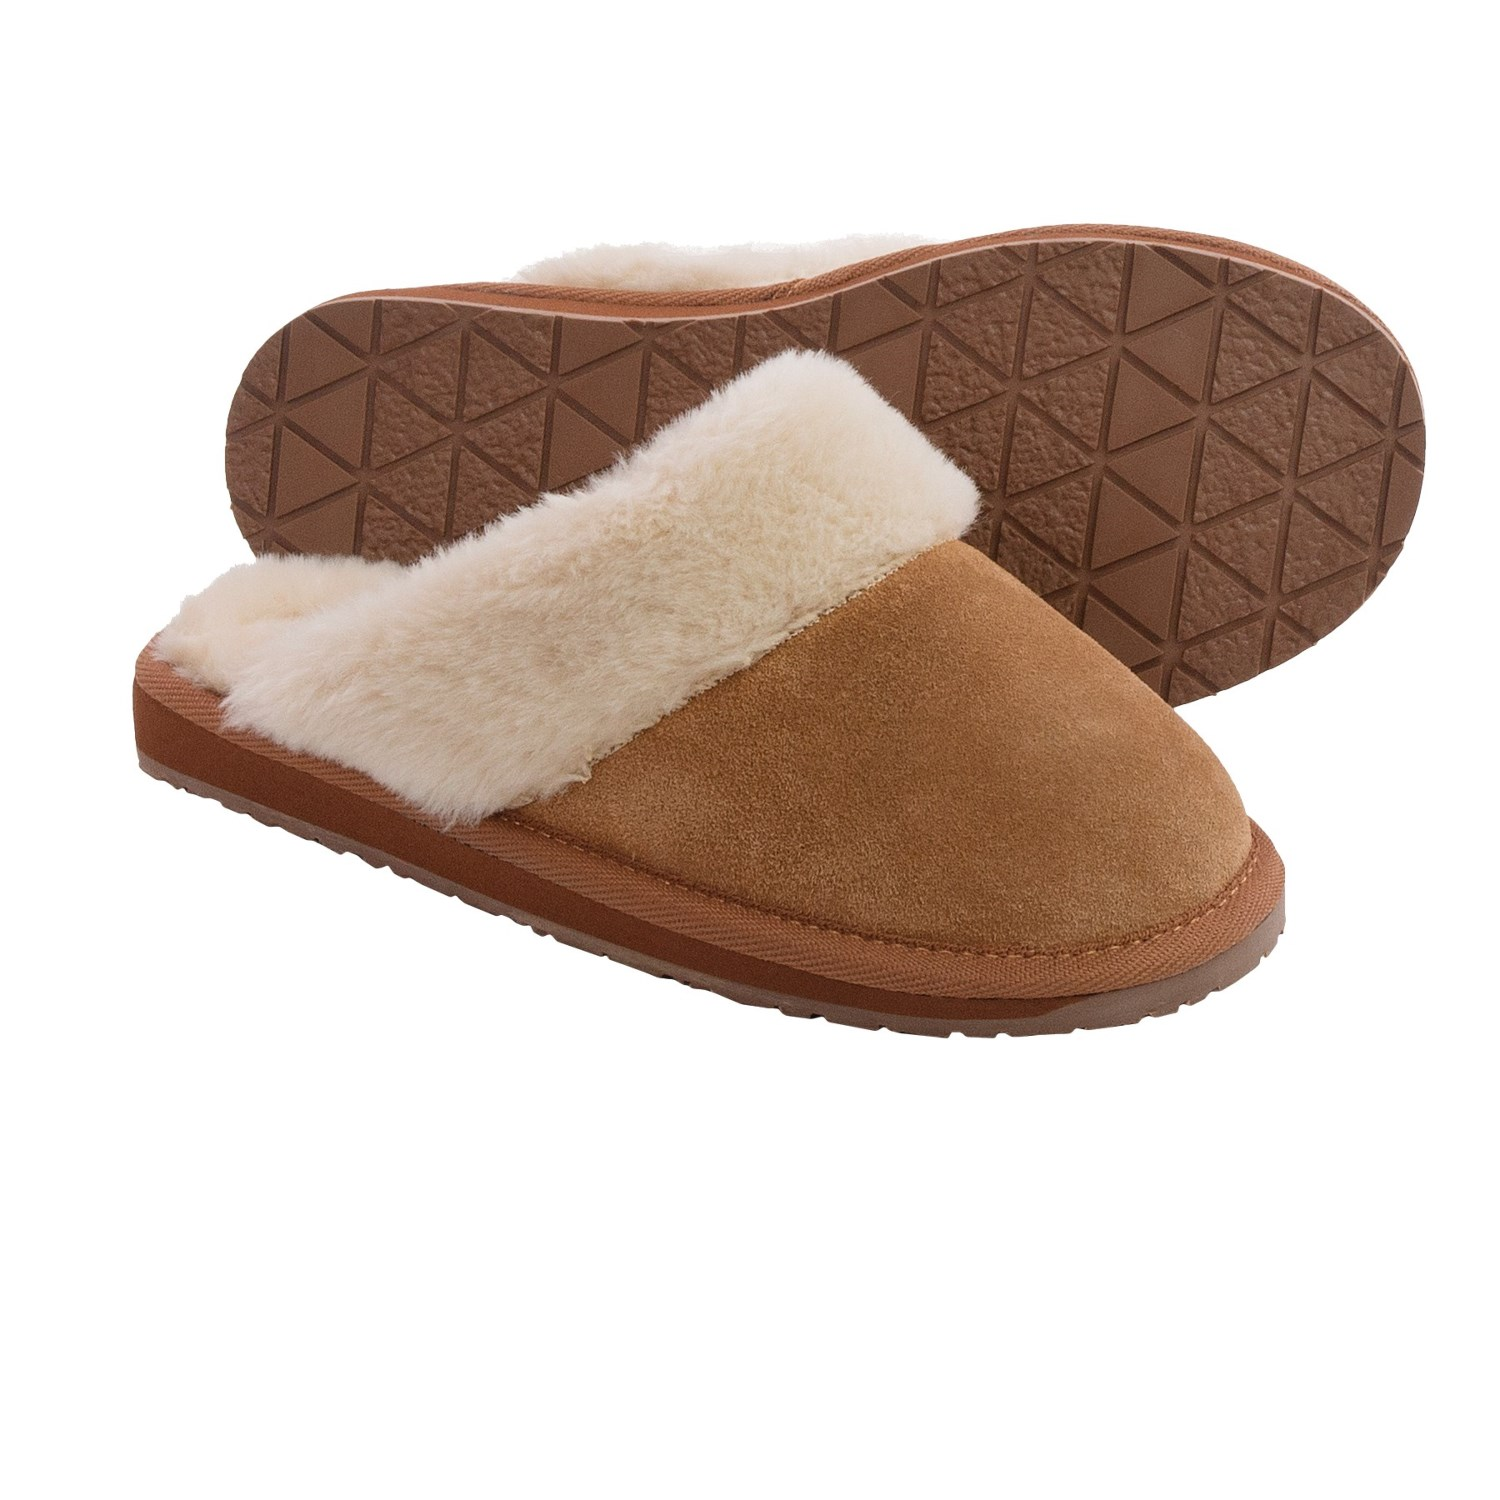 Flip flops for women online Enjoy scrolling through the varied collection of affordable slippers for women online only on Shoppers Stop. The buyers can now easily check out the latest and own those stylish shoes.